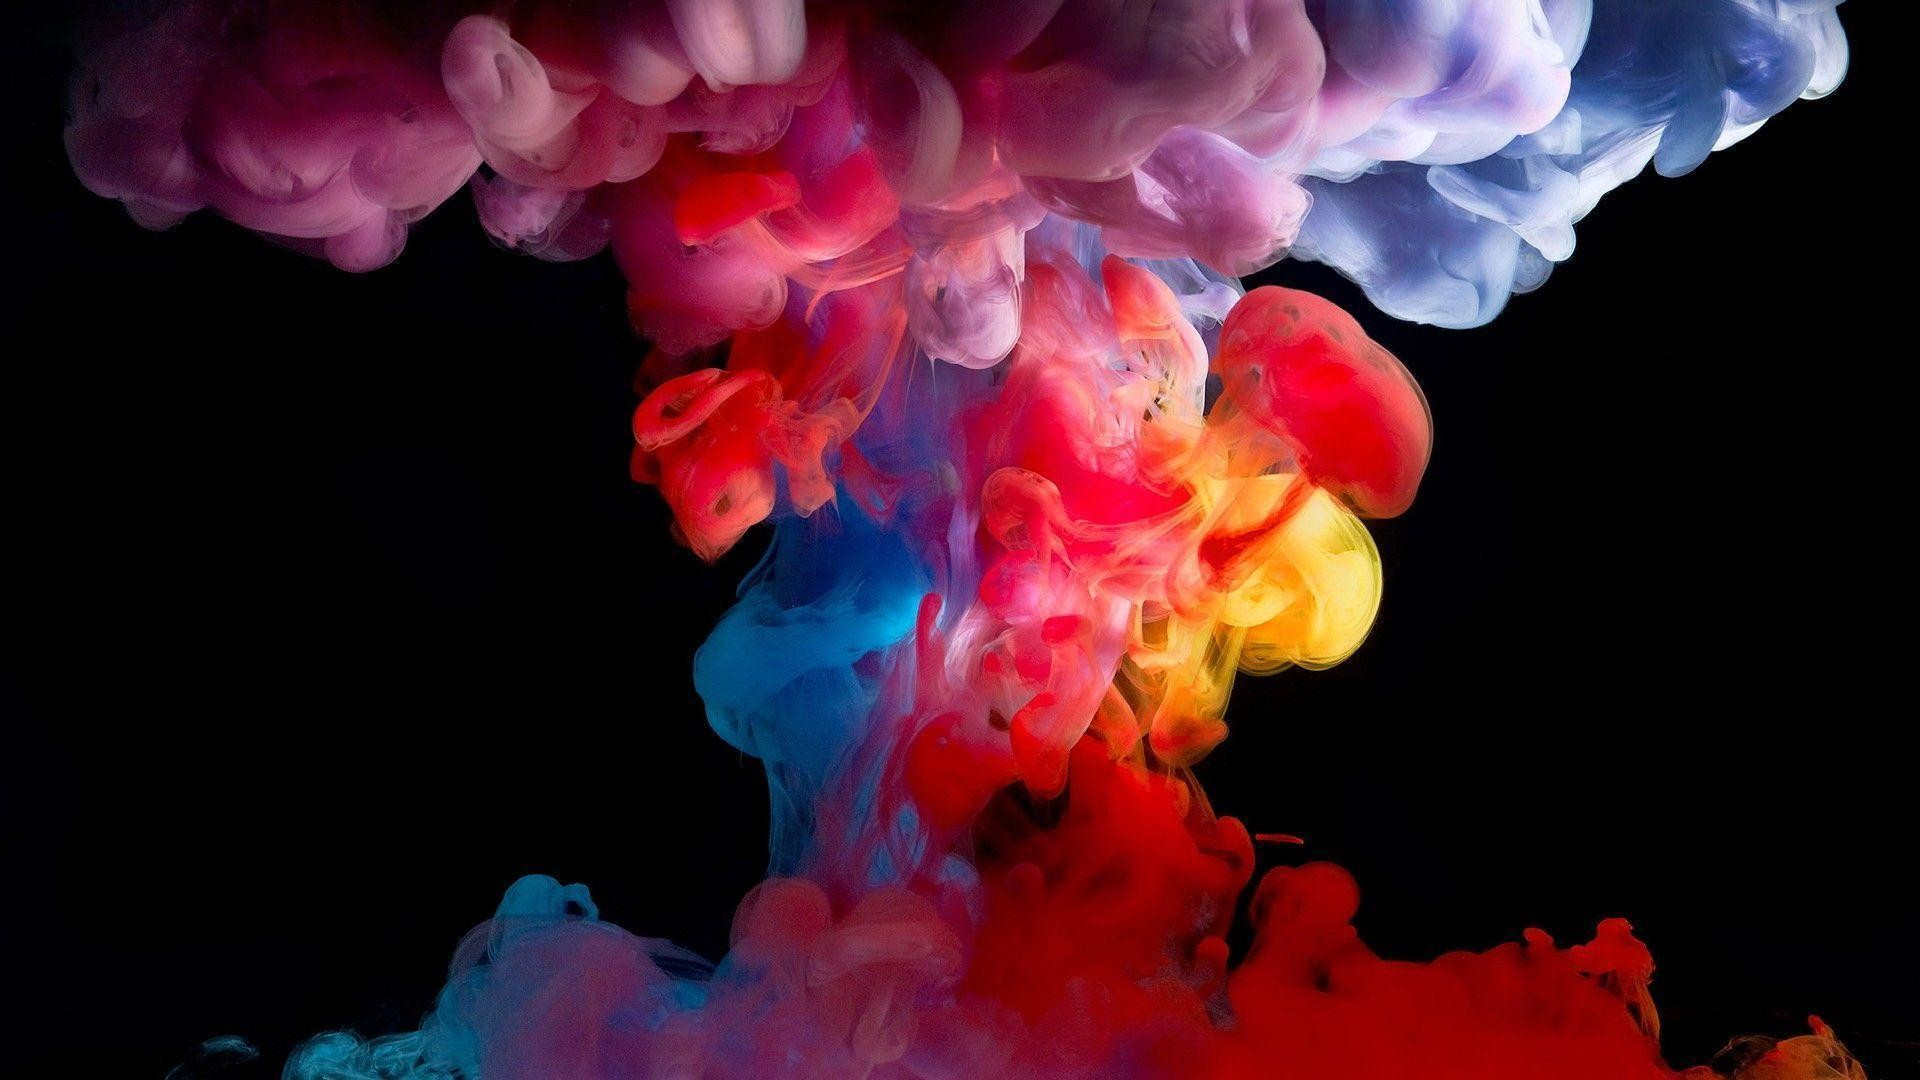 1920x1080 Colorful Smoke Wallpapers and Background